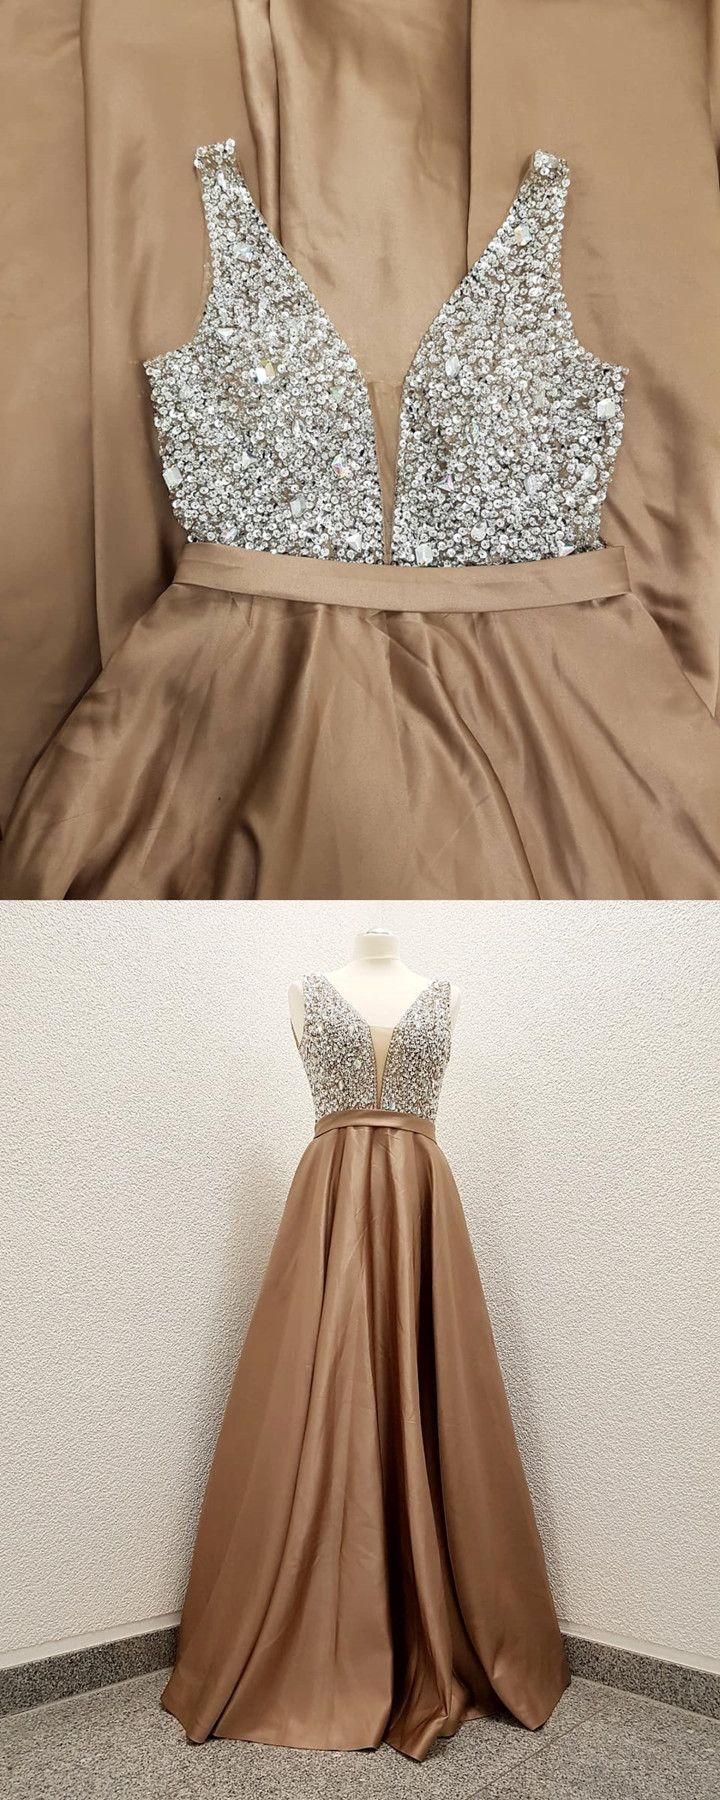 Sparkly sequins champagne long prom dress from wendyhouse elbise